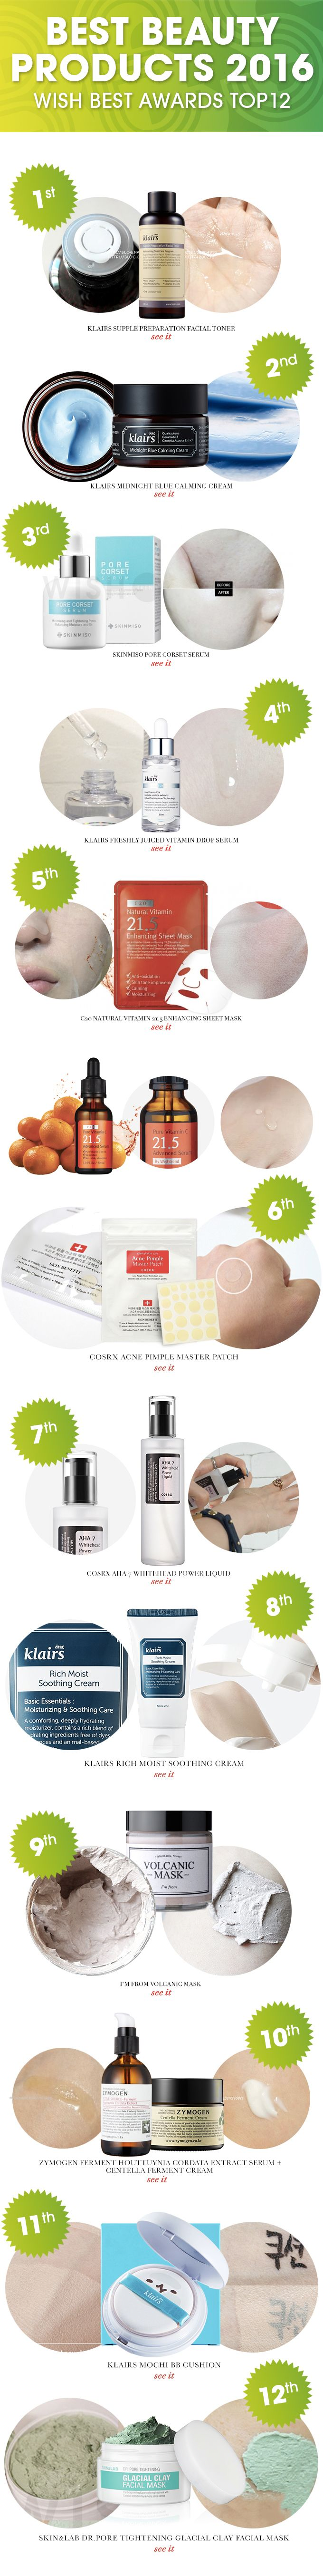 Awe Inspiring 17 Best Images About Korean Cosmetics Skincare On Pinterest Hairstyles For Men Maxibearus